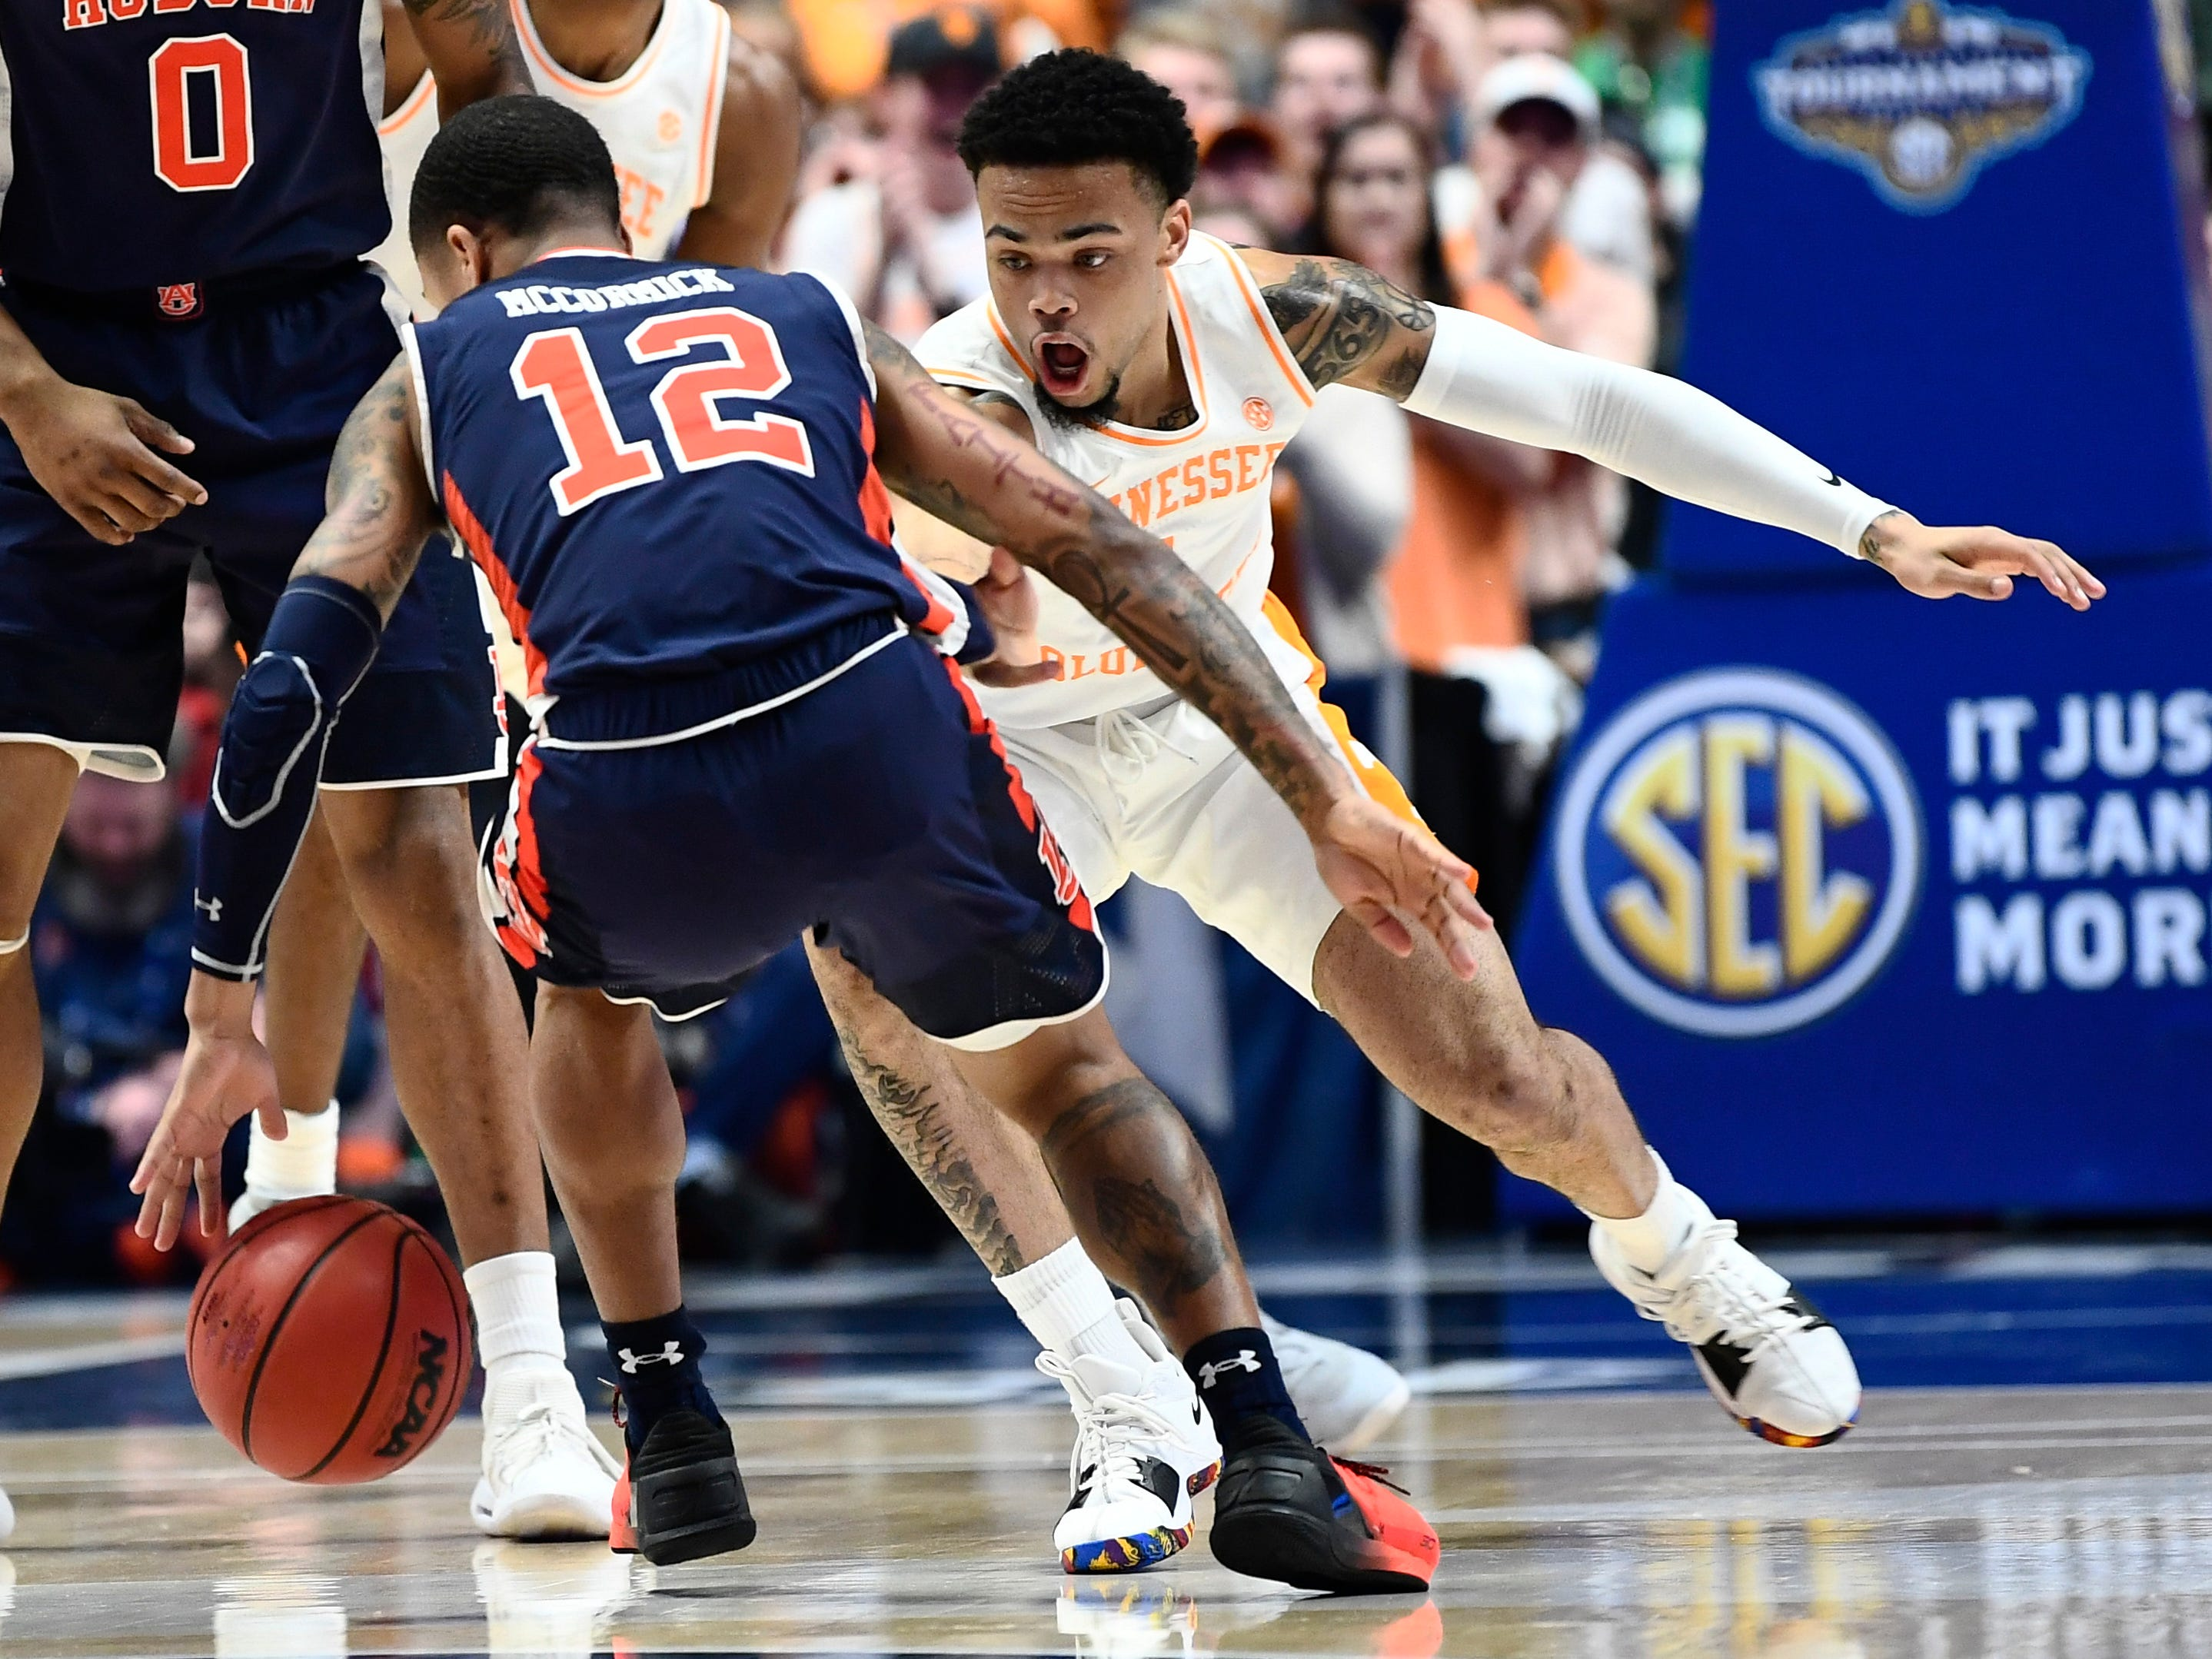 Auburn guard J'Von McCormick (12) moves the ball defended by Tennessee guard Lamonte Turner (1) during the first half of the SEC Men's Basketball Tournament championship game at Bridgestone Arena in Nashville, Tenn., Sunday, March 17, 2019.